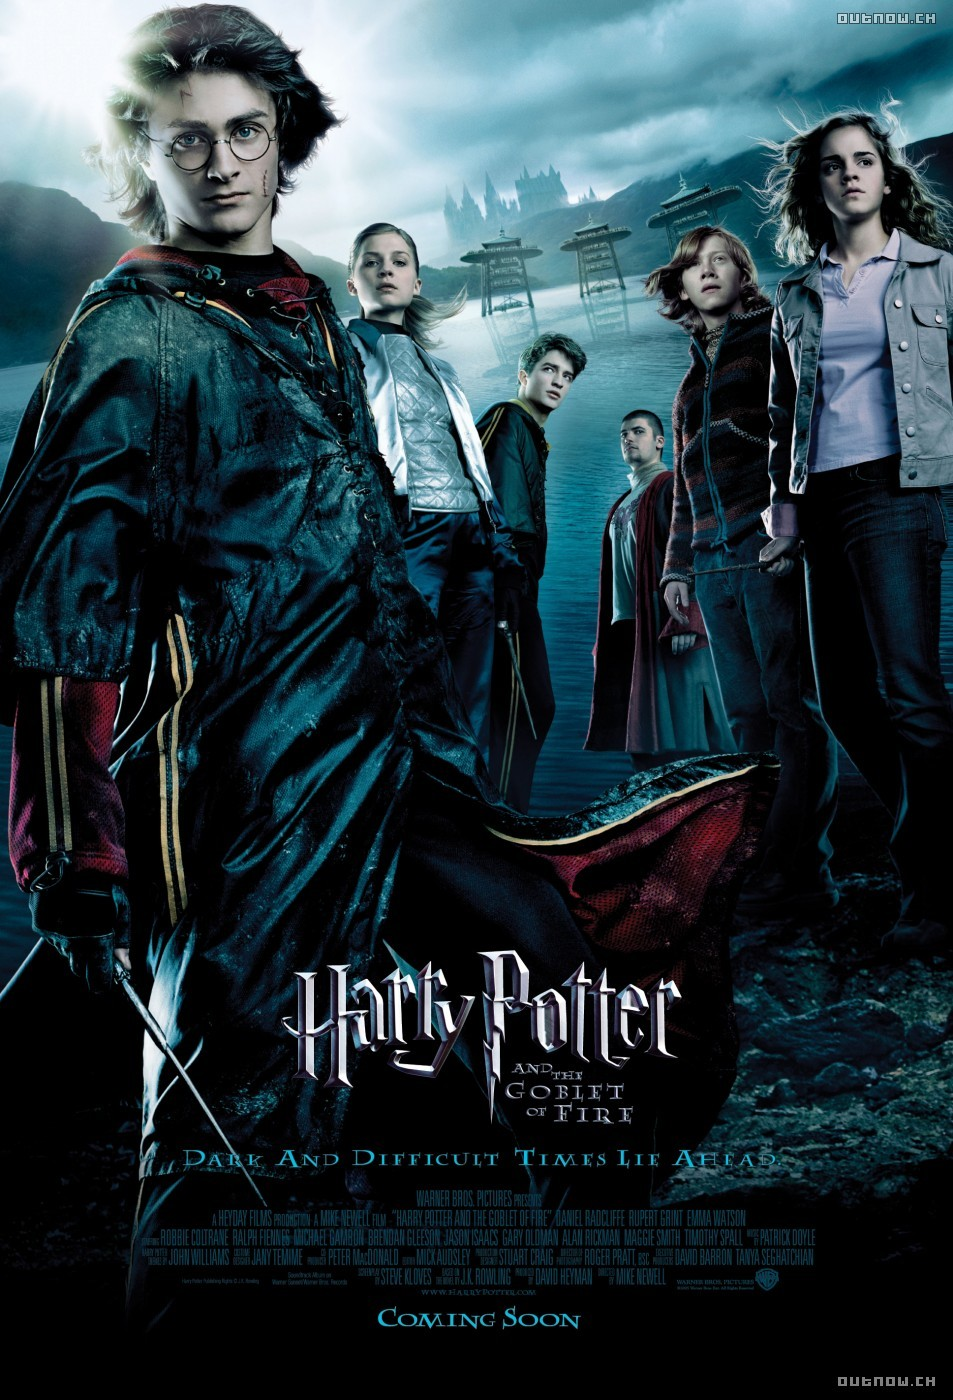 Cartel de Harry Potter y el Cáliz de Fuego